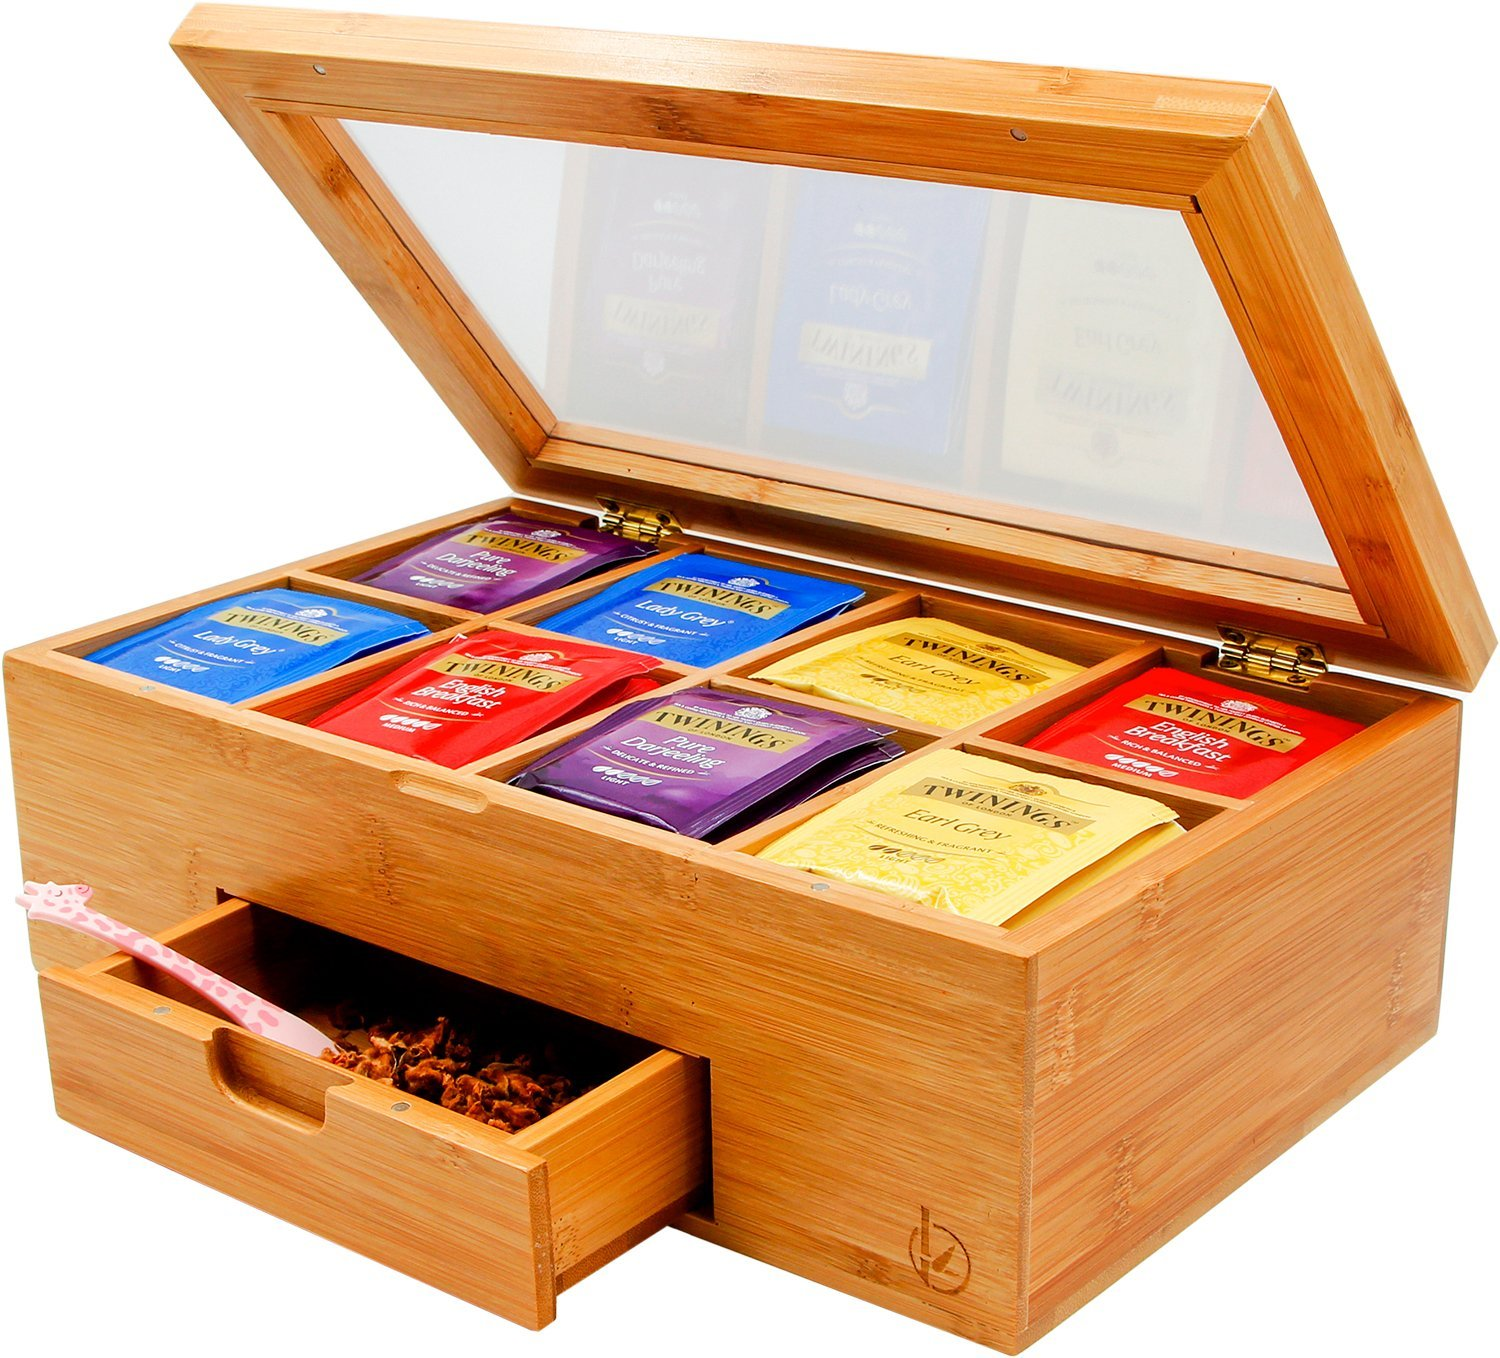 Bamboo Tea Box, BambooDaily Nice Tea Bag Storage Chest with Expandable Drawer, 8 Compartments, Clear Hinged Lid, Natural Color